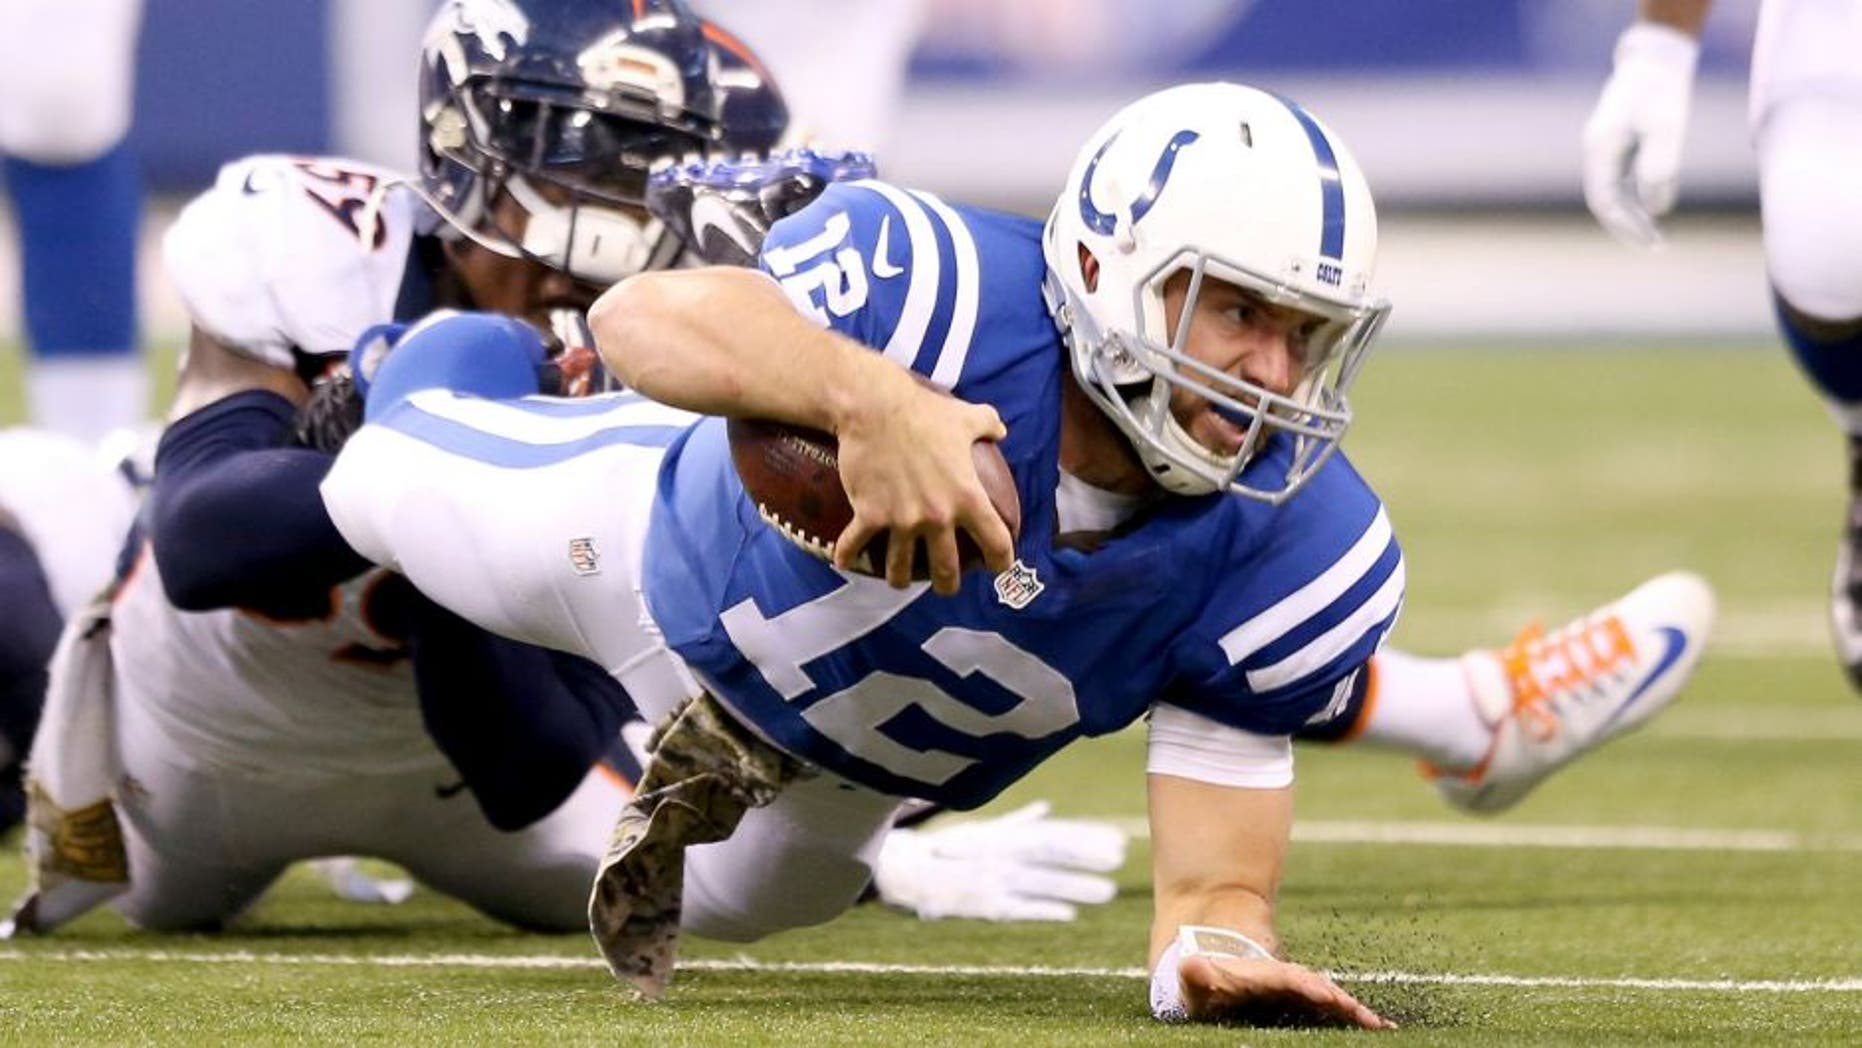 INDIANAPOLIS, IN - NOVEMBER 08: Andrew Luck #12 of the Indianapolis Colts runs with the ball during the game against the Denver Broncos at Lucas Oil Stadium on November 8, 2015 in Indianapolis, Indiana. (Photo by Andy Lyons/Getty Images)